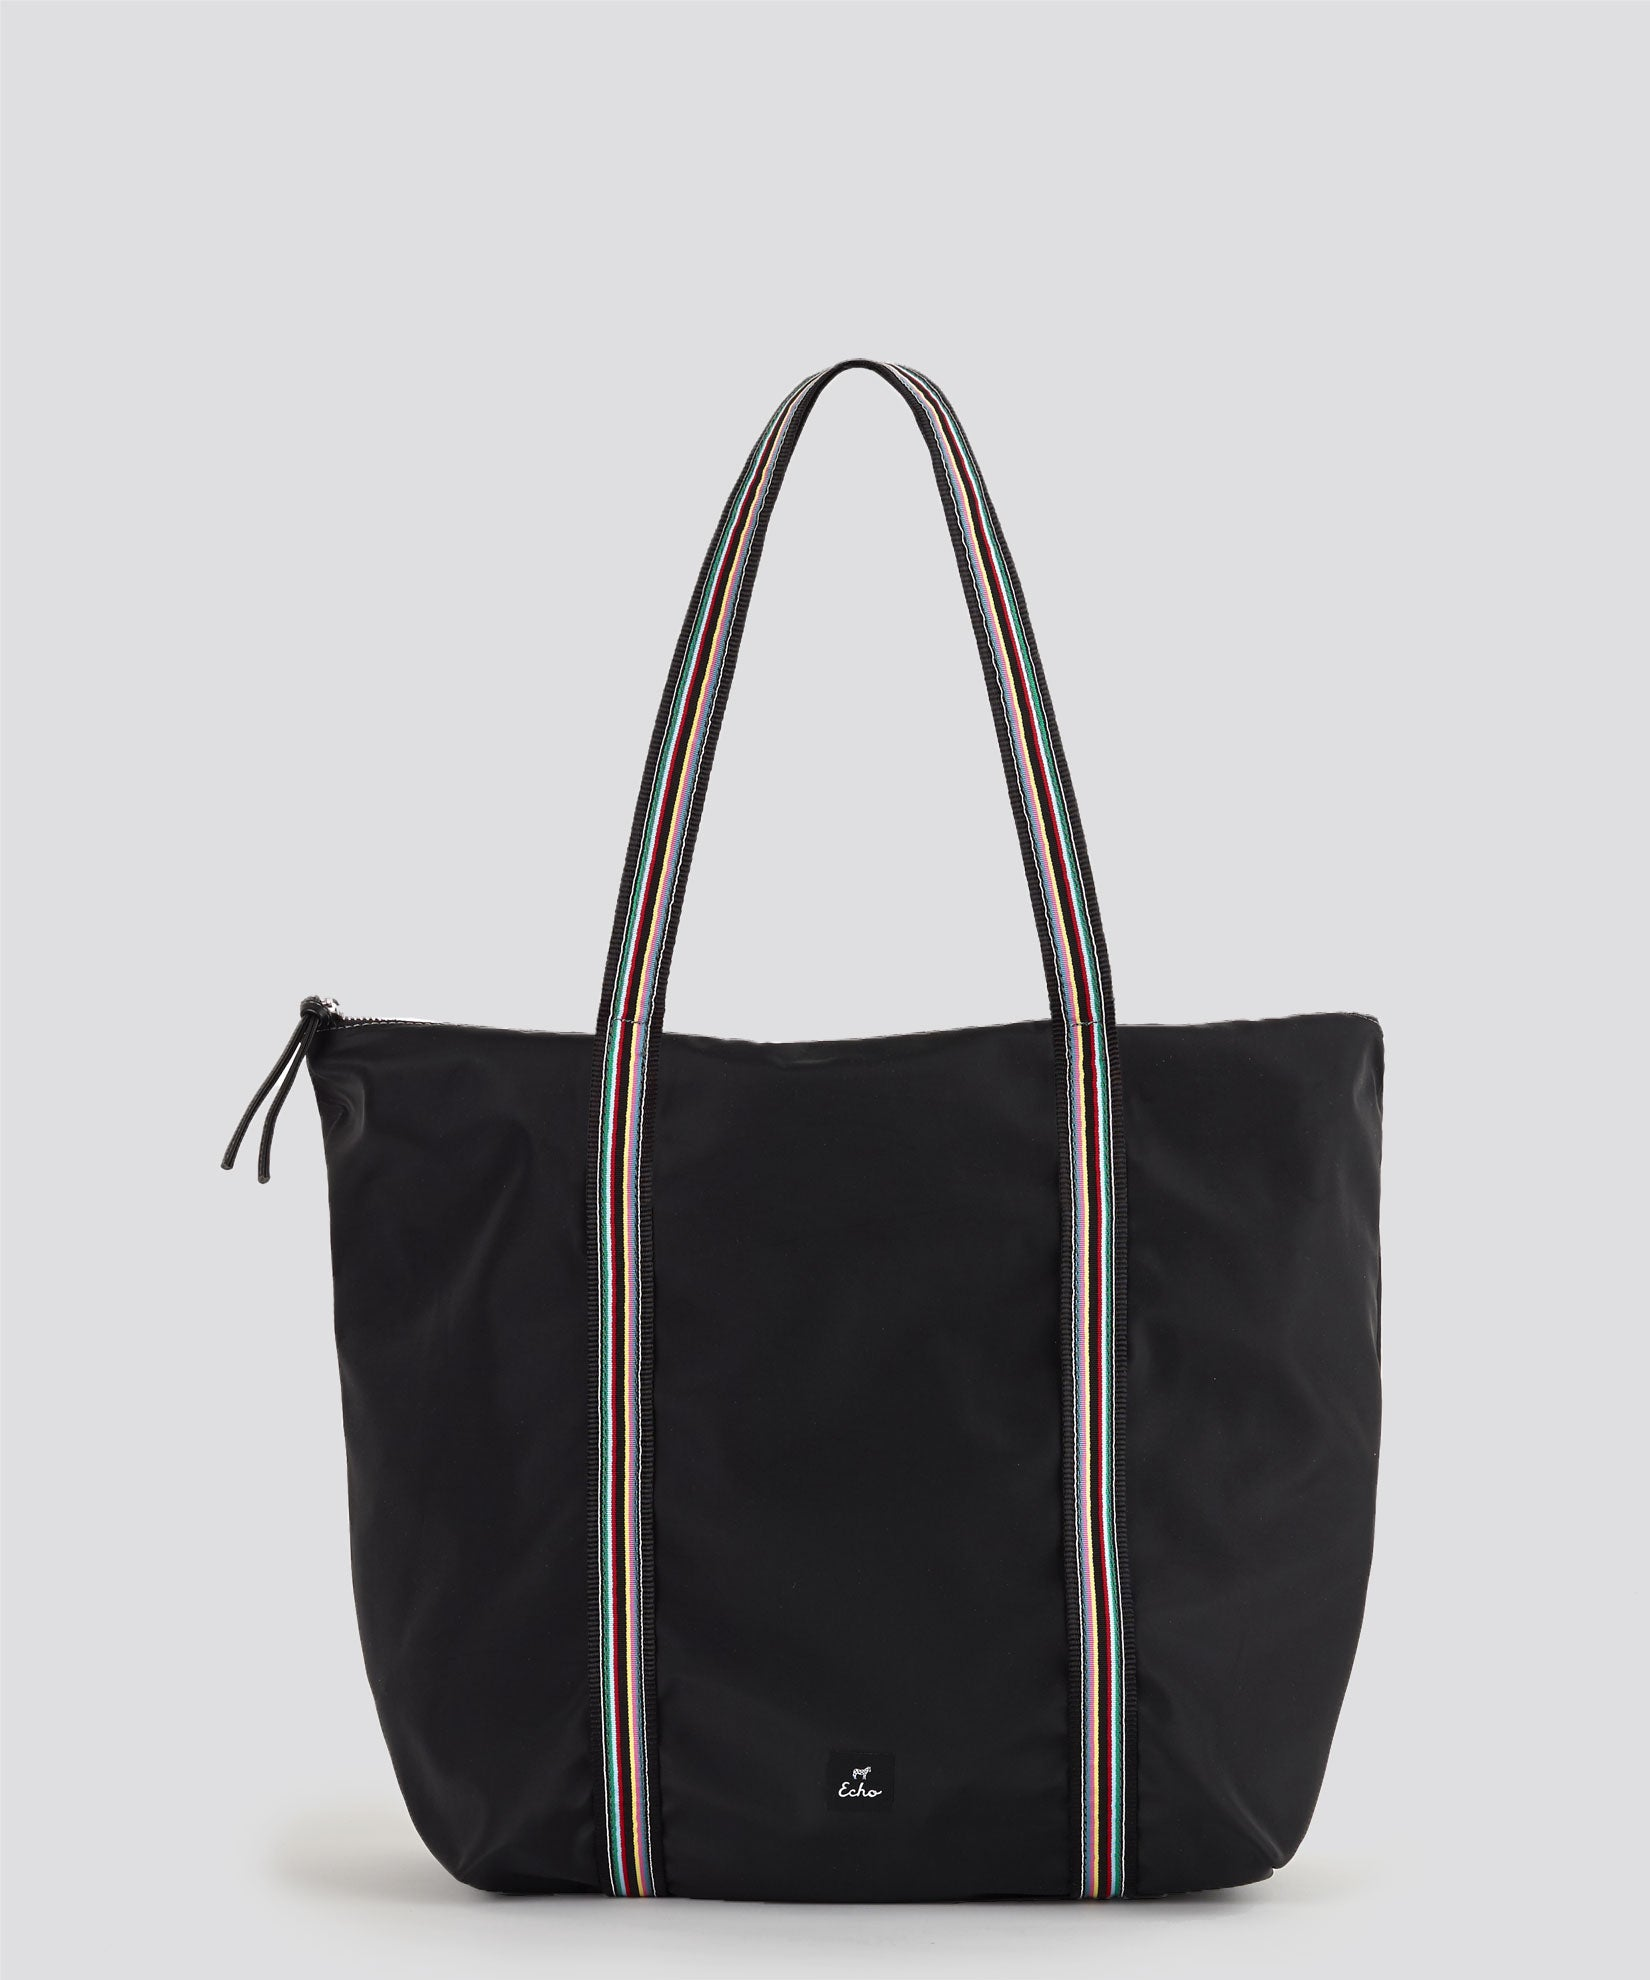 Black - London Tote